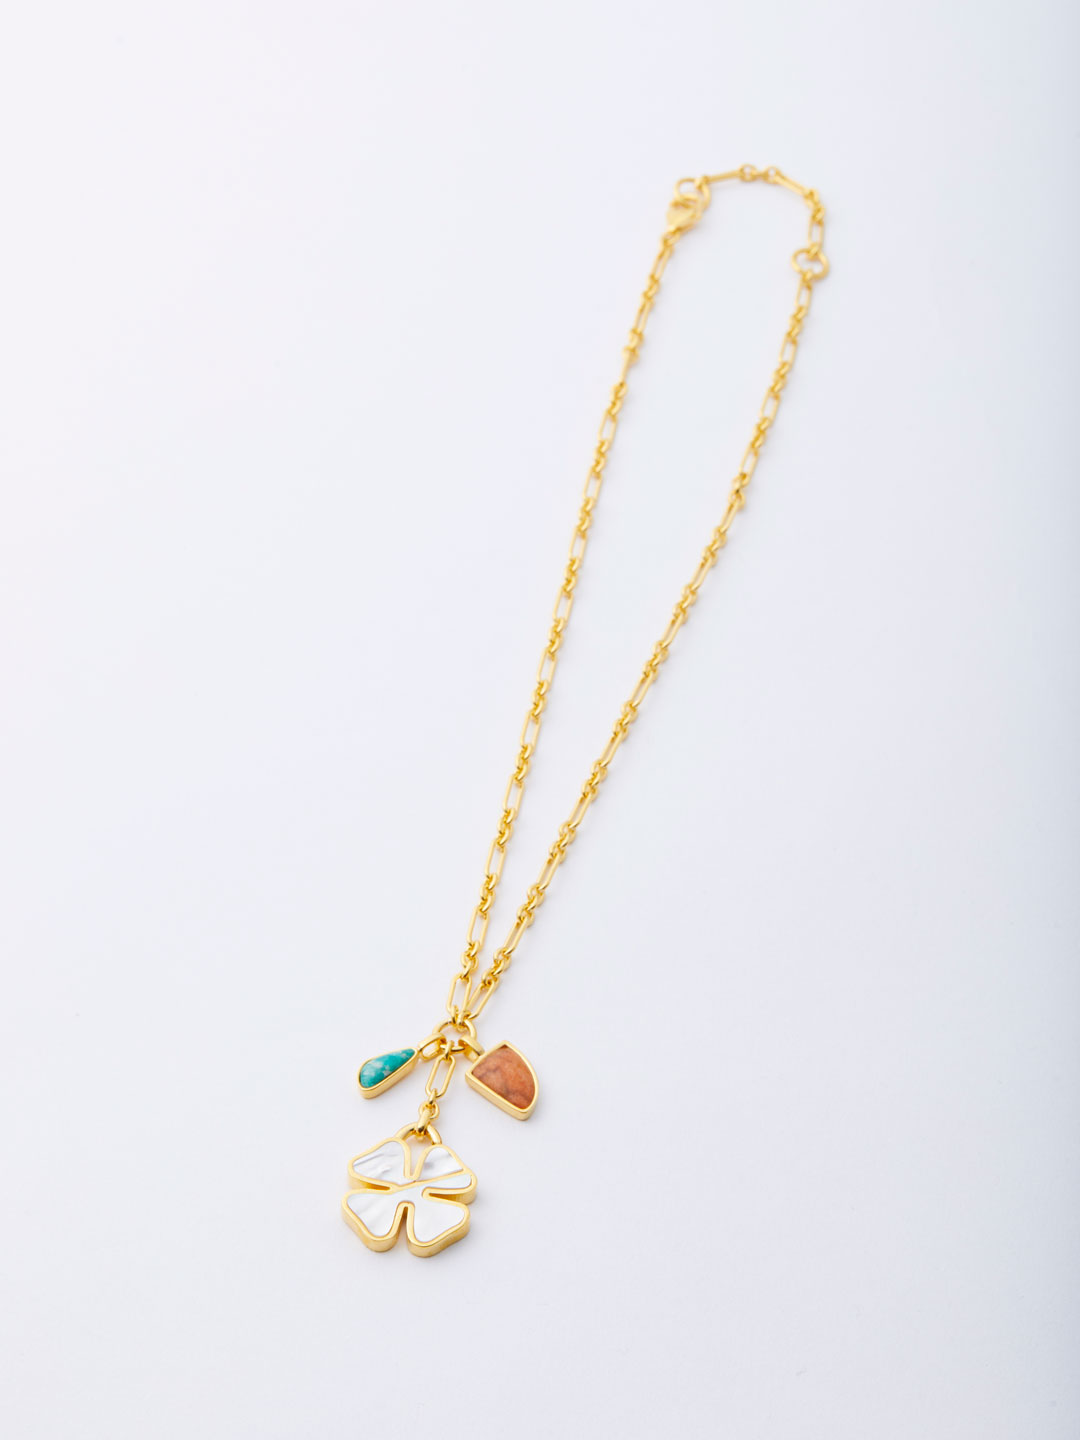 Bonne Chance Charm Necklace - Gold